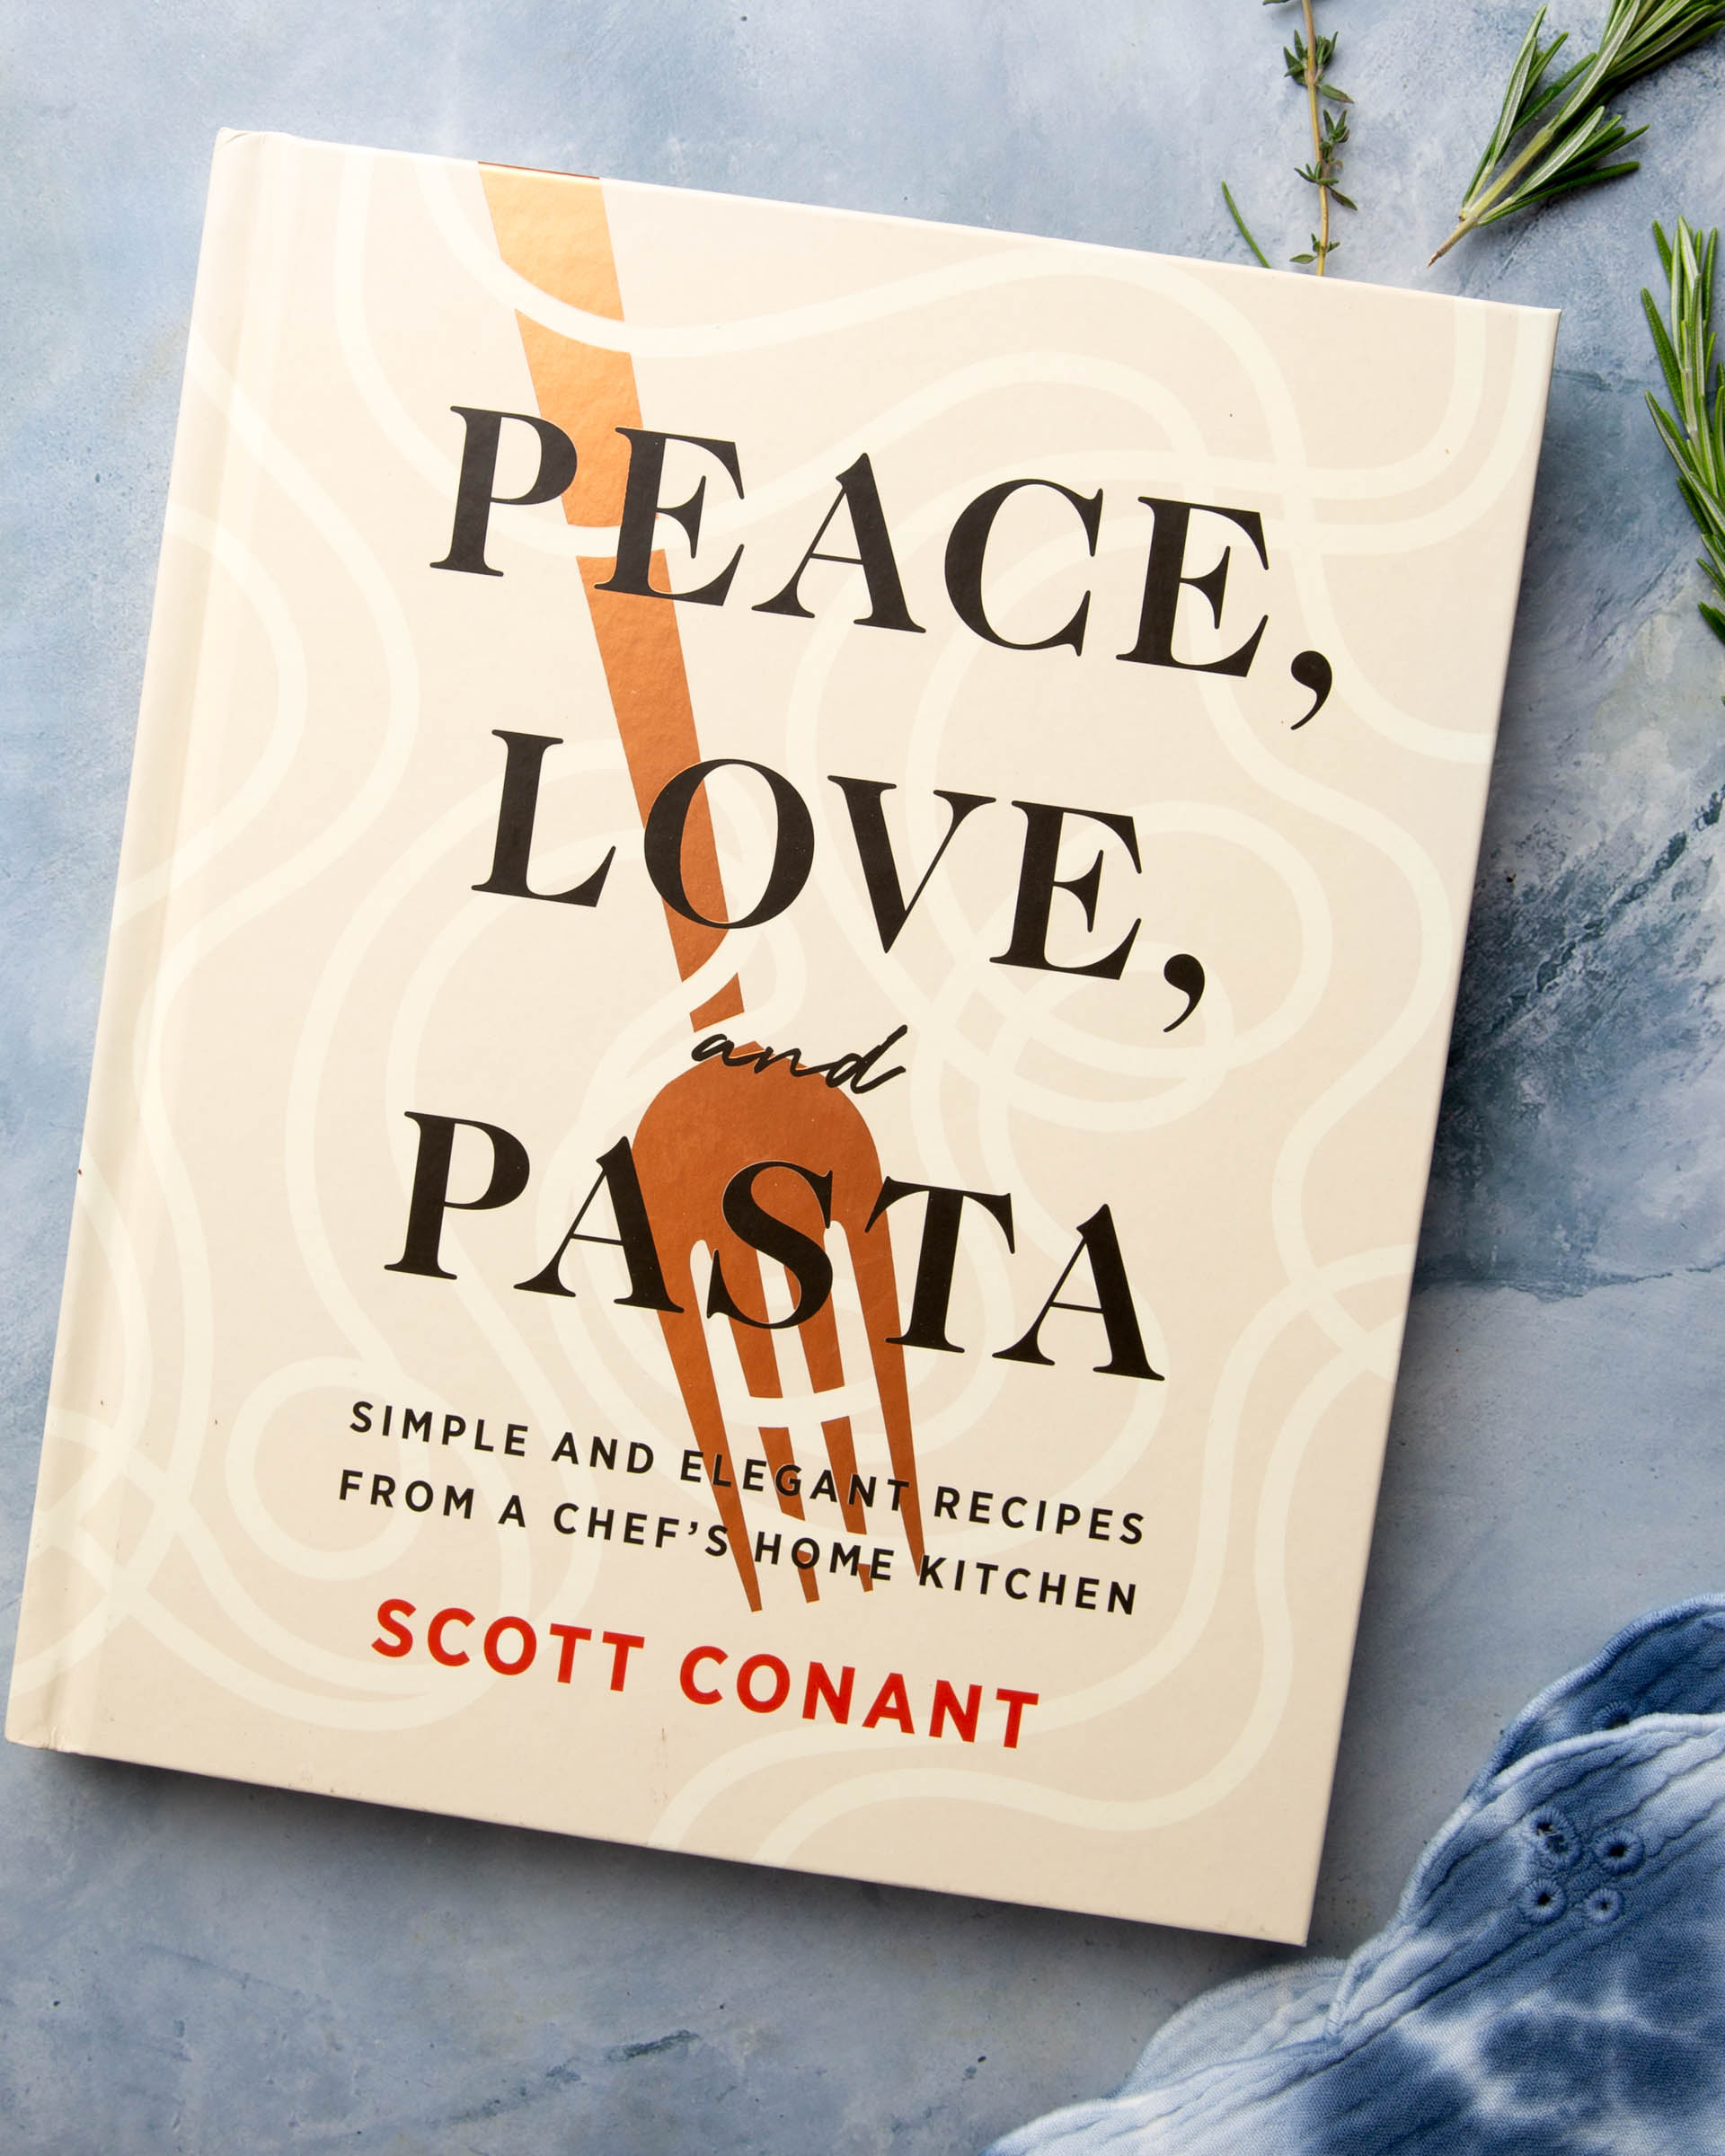 Love Peace and Pasta from Scott Conant